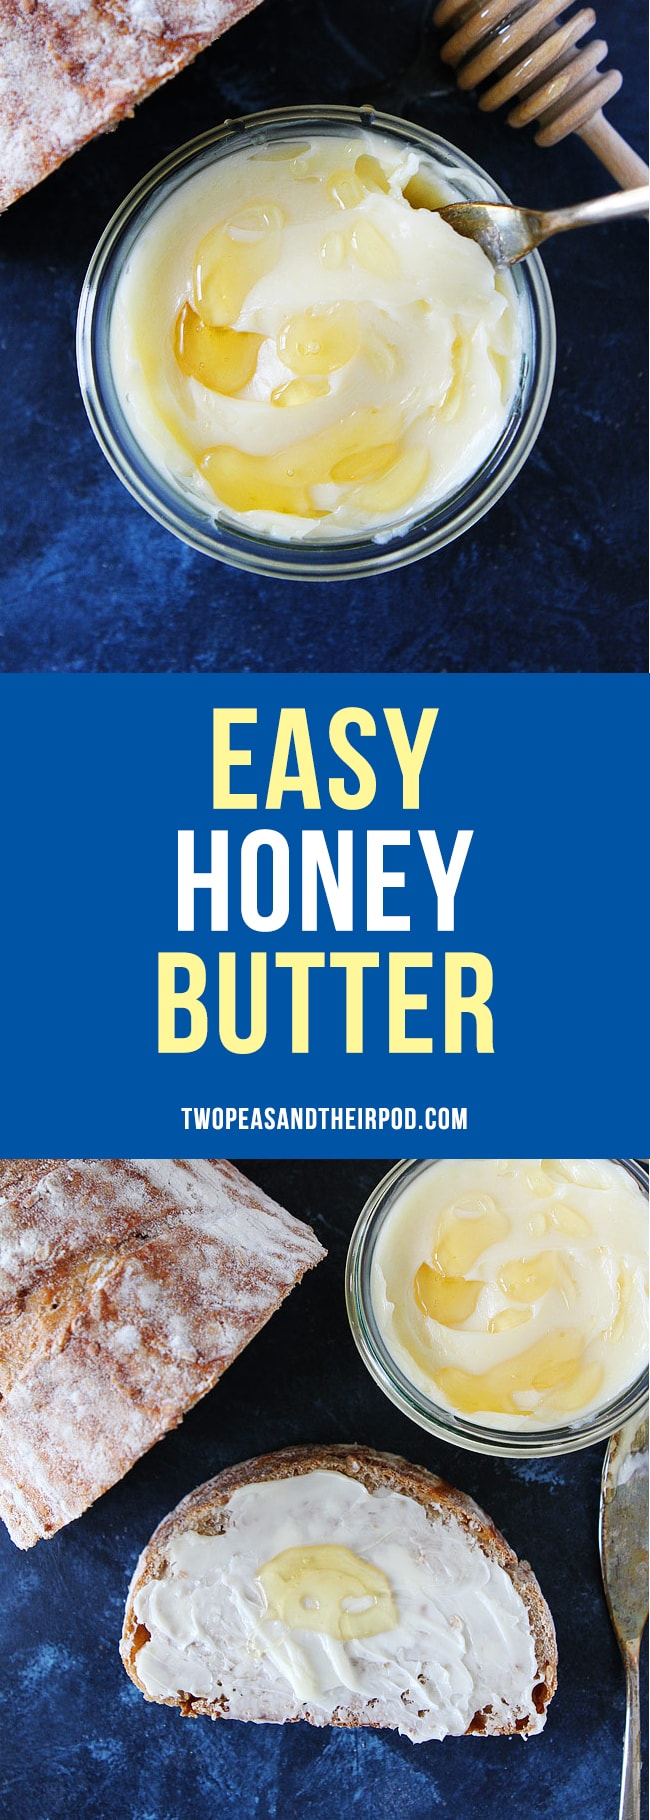 Easy Honey Butter-you only need 2 ingredients to make this delicious homemade butter! It is great with butter, rolls, pancakes, waffles, and more! #butter #honey